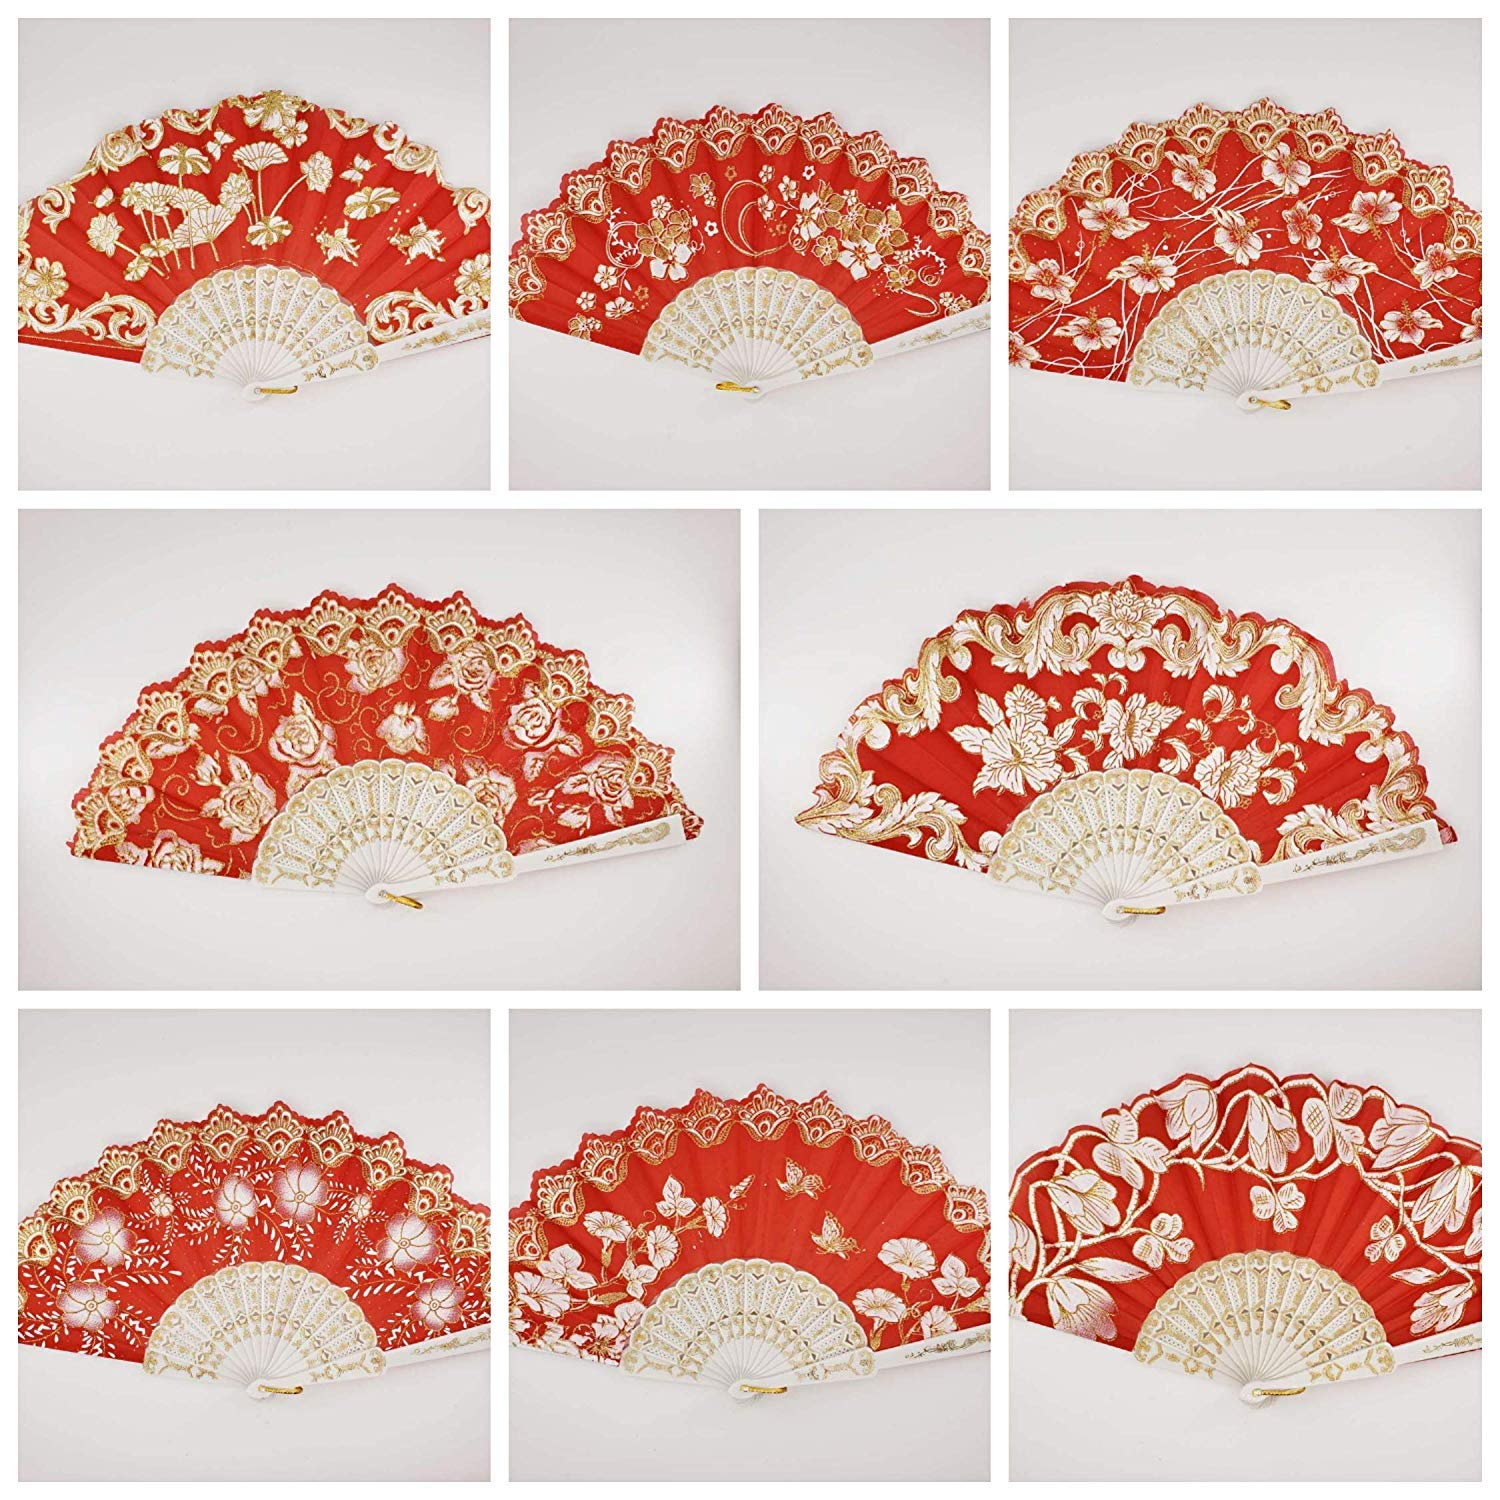 12 Pc Mix Spanish Style Red and Gold Glitter Floral Pattern Folding Fan for Wedding Party Decor/Sweet 15 favors/Dancing Hand Fan/Table Setting/Wall Decoration/Out Door Wedding/Wedding Gift